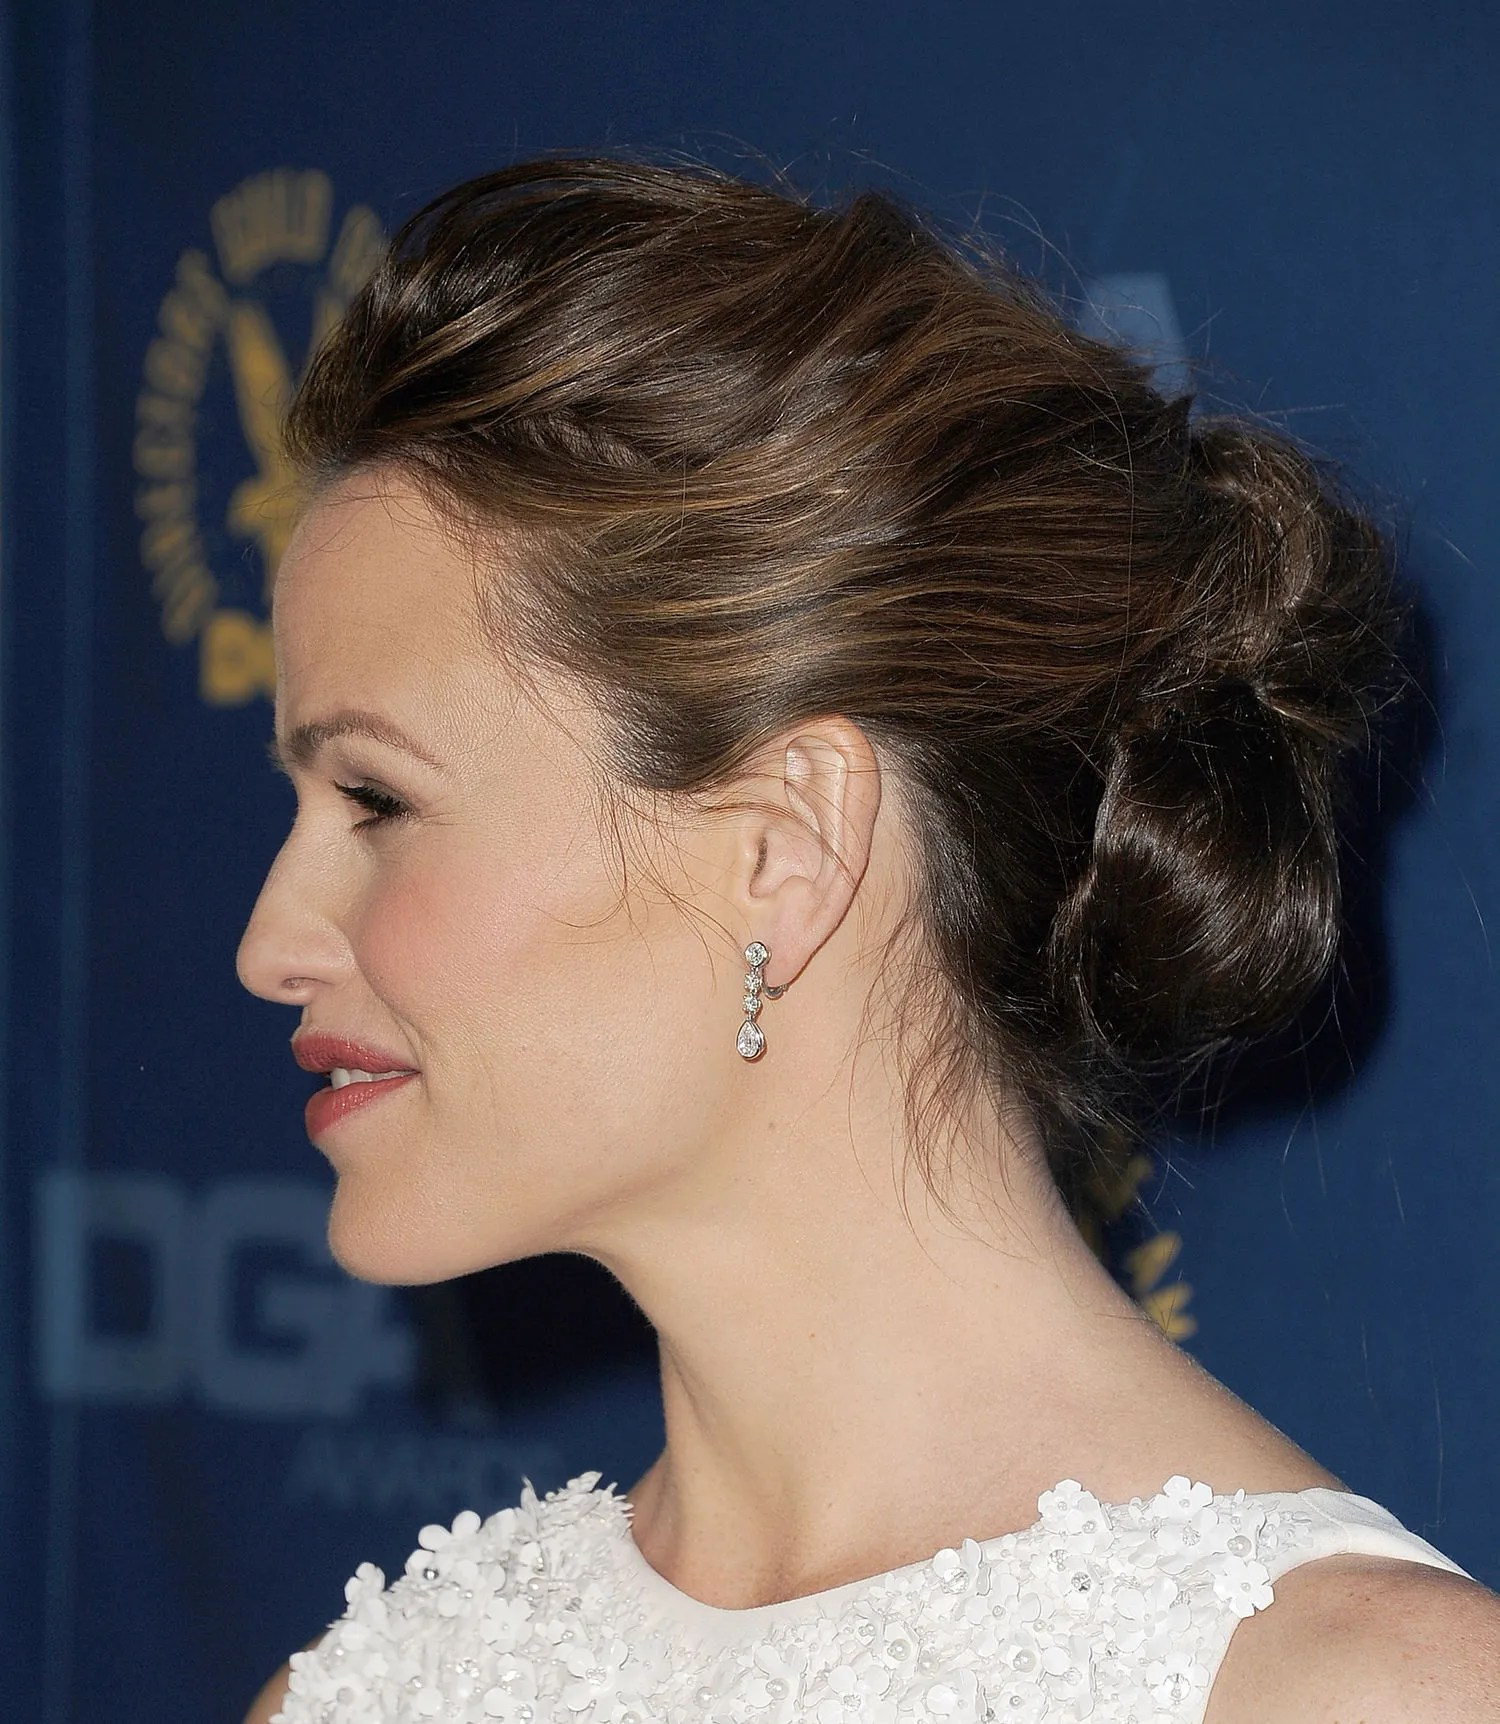 This Updo On Jennifer Garner Was The Very Best Hairstyle